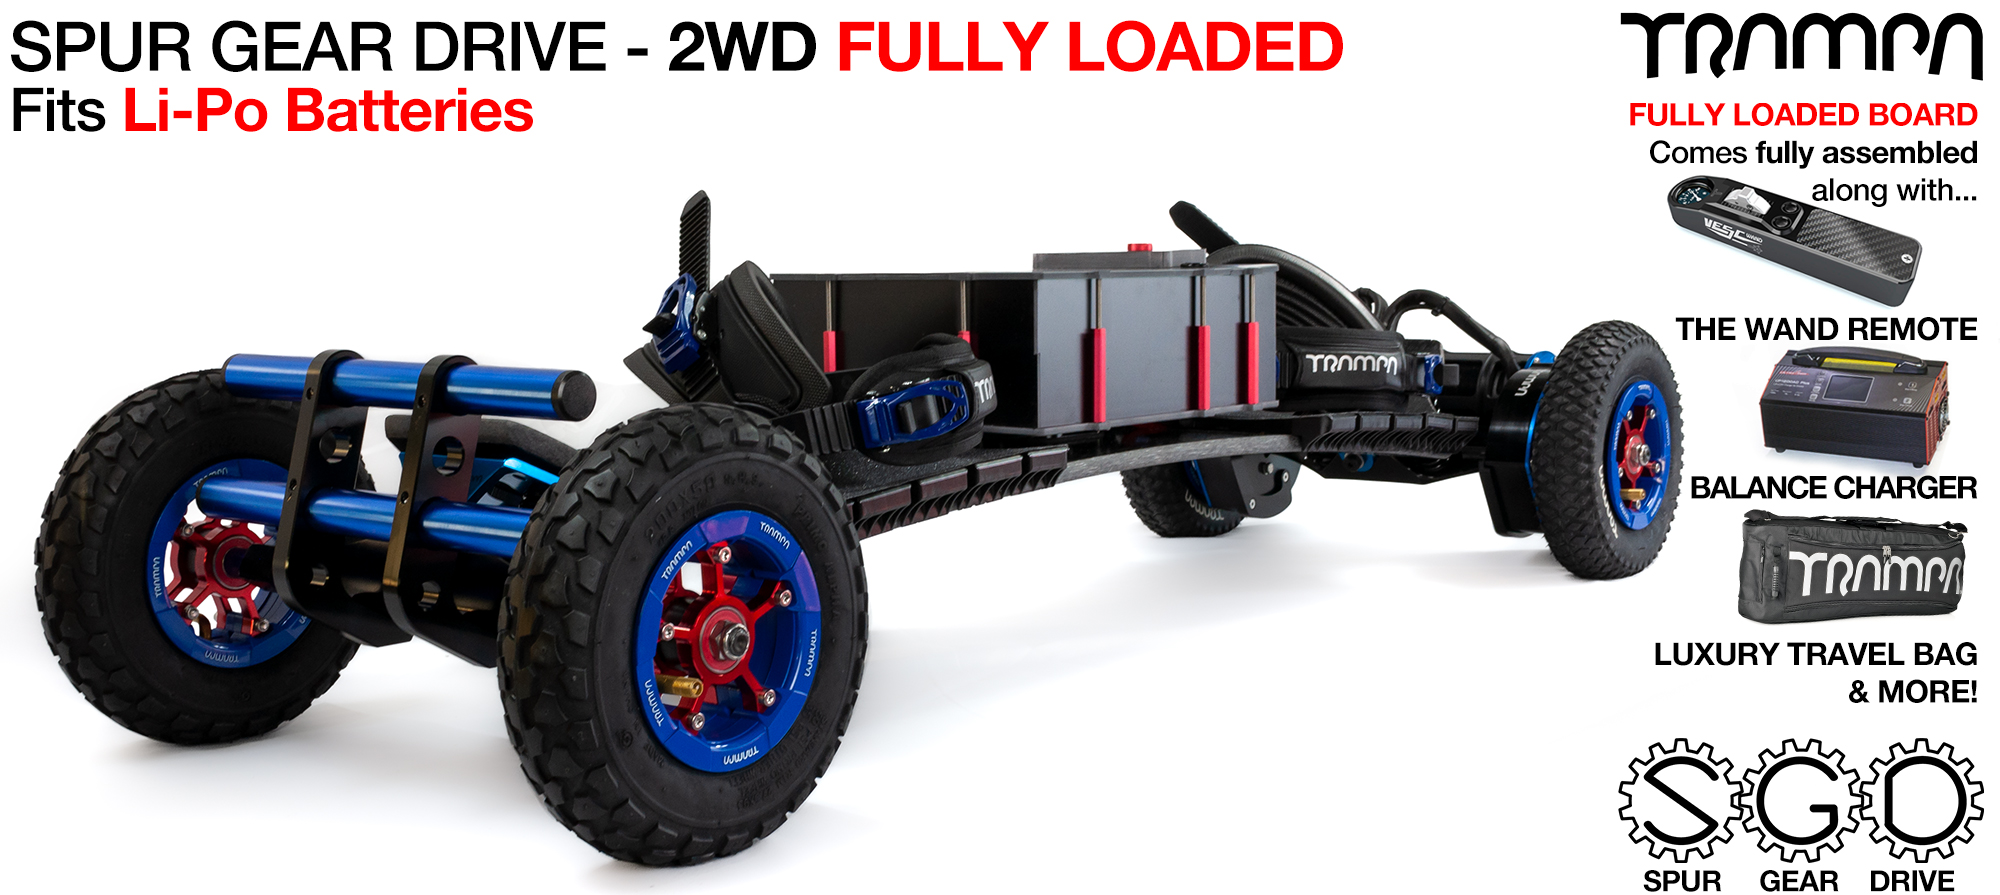 2WD SPUR GEAR DRIVE Electric Mountainboard - FULLY LOADED PHATLAD with 9 inch PHATLADs on rear 8 inch HYPA's on front, Mud-Pluggers supplied with The WAND, 12A Charger & 21700 CELL PACK!!